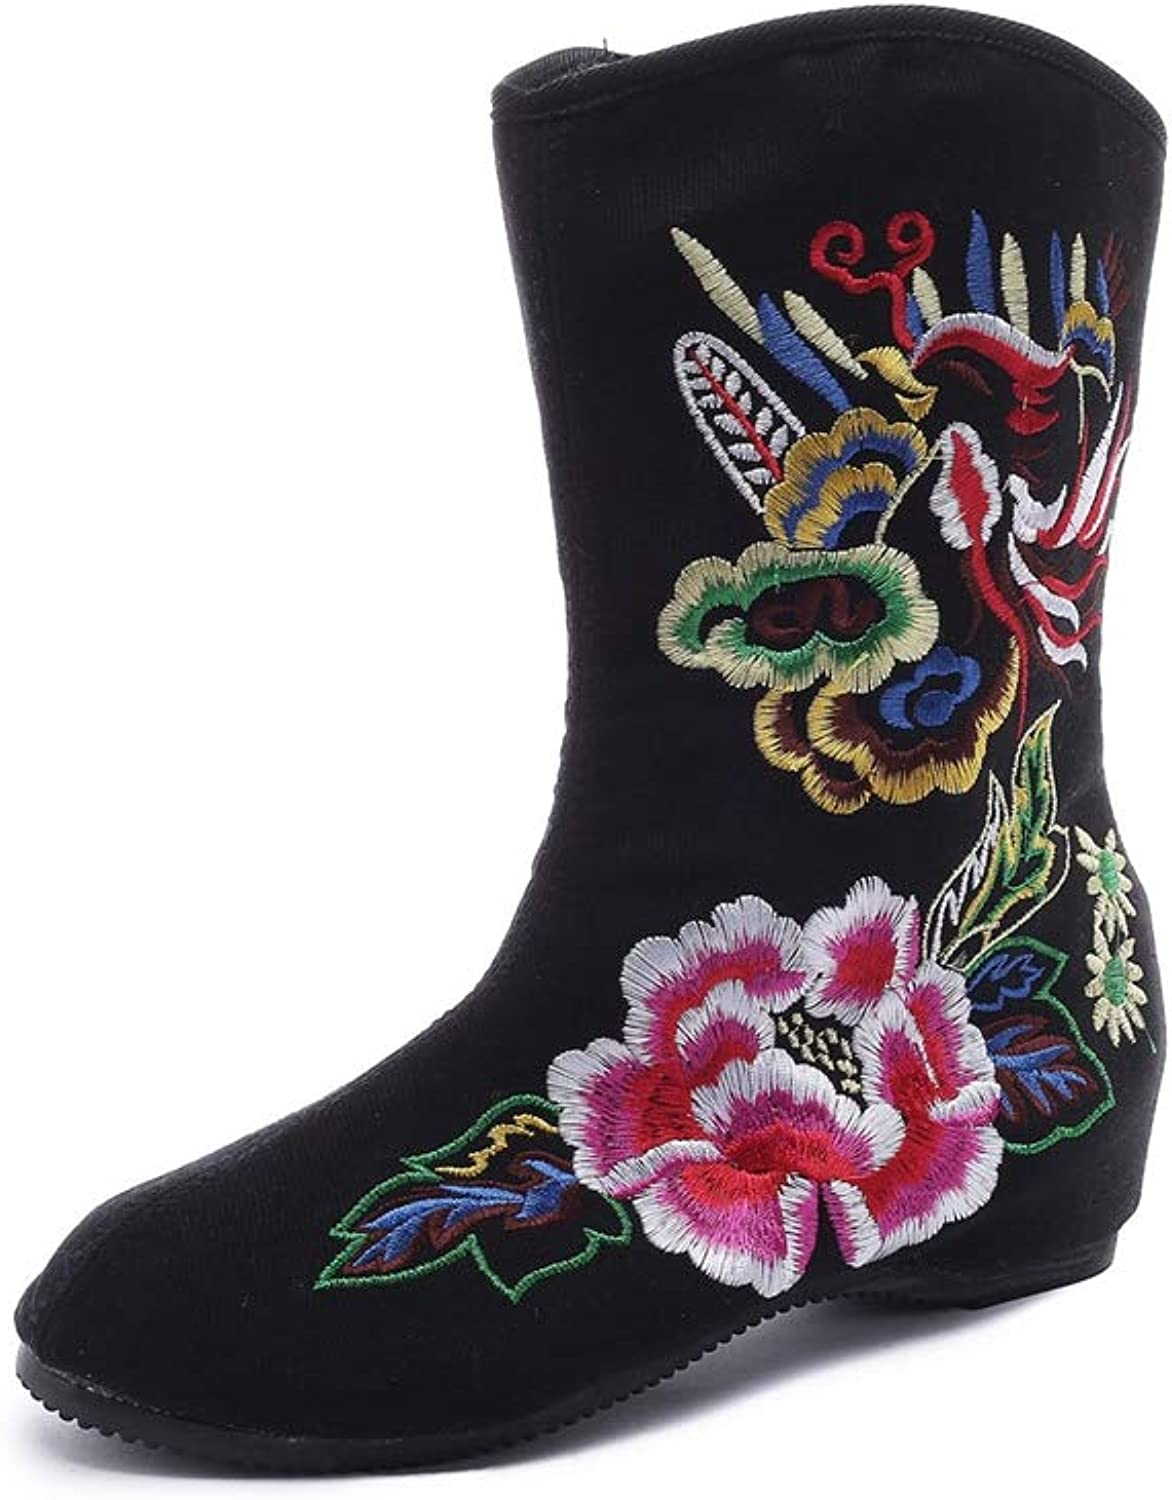 Kyle Walsh Pa Women Embroidered Boots Hidden Wedge Round Toe Canvas Female Classic Unique Autumn Winter Booties